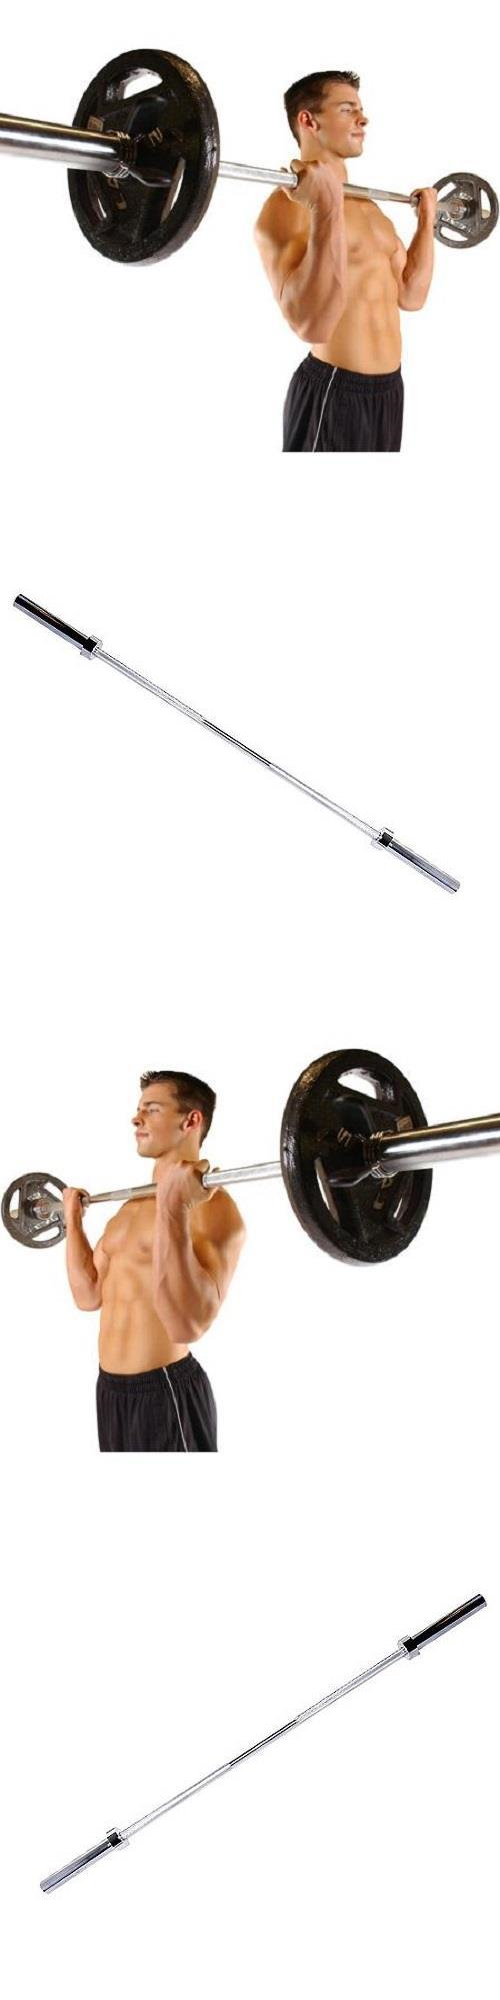 Barbells And Attachments 137864 Barbell 2 Inch Olympic Weight Bar 5 Ft Solid